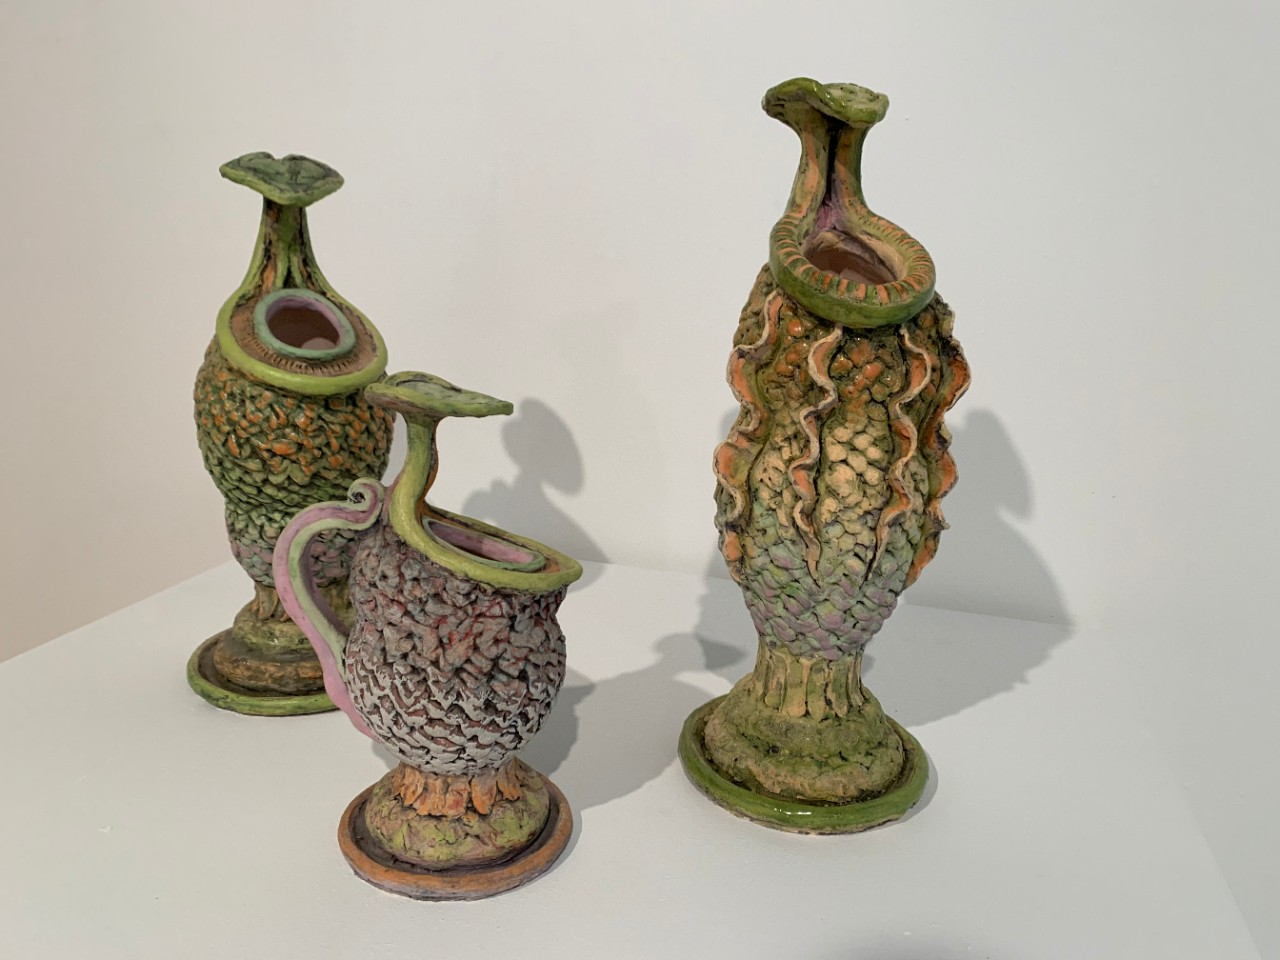 Pitcher Plants, Sharon Bladholm, ceramics, 2015 and 2019.